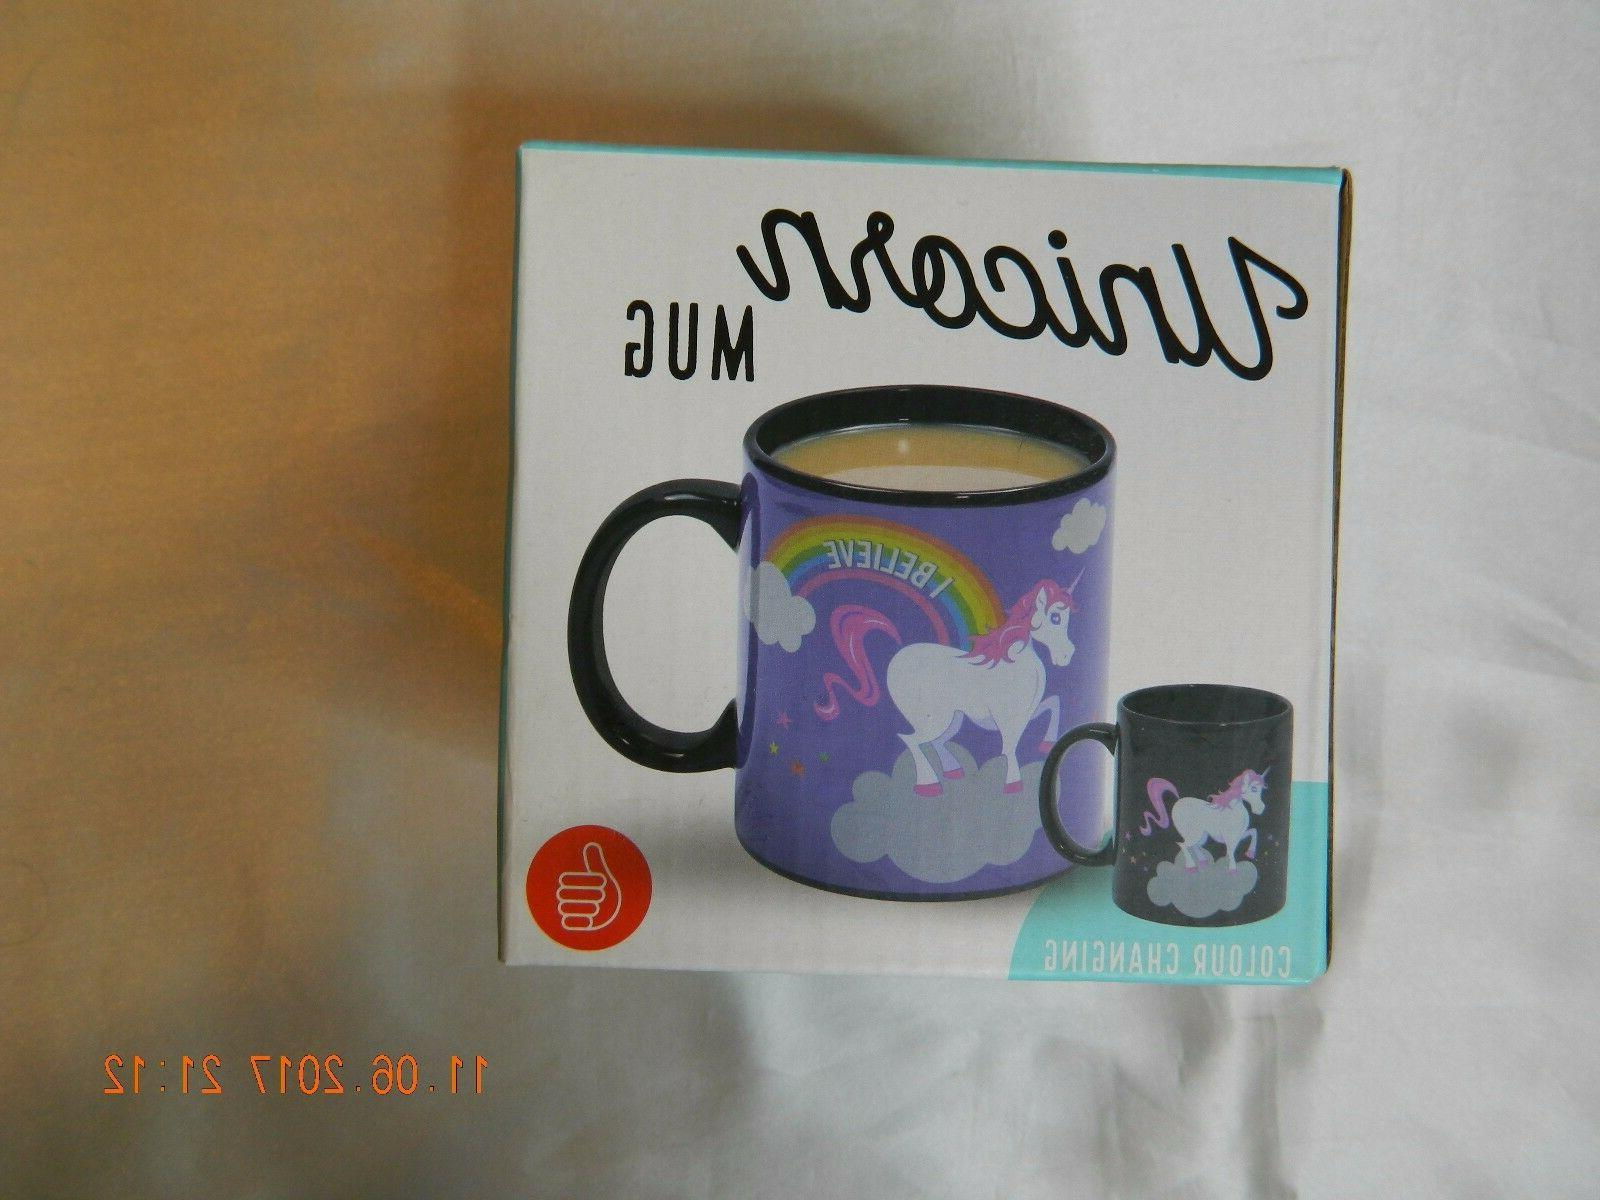 Unicorn Mug by Thumbs Up! Original Ceramic Color Changing BN